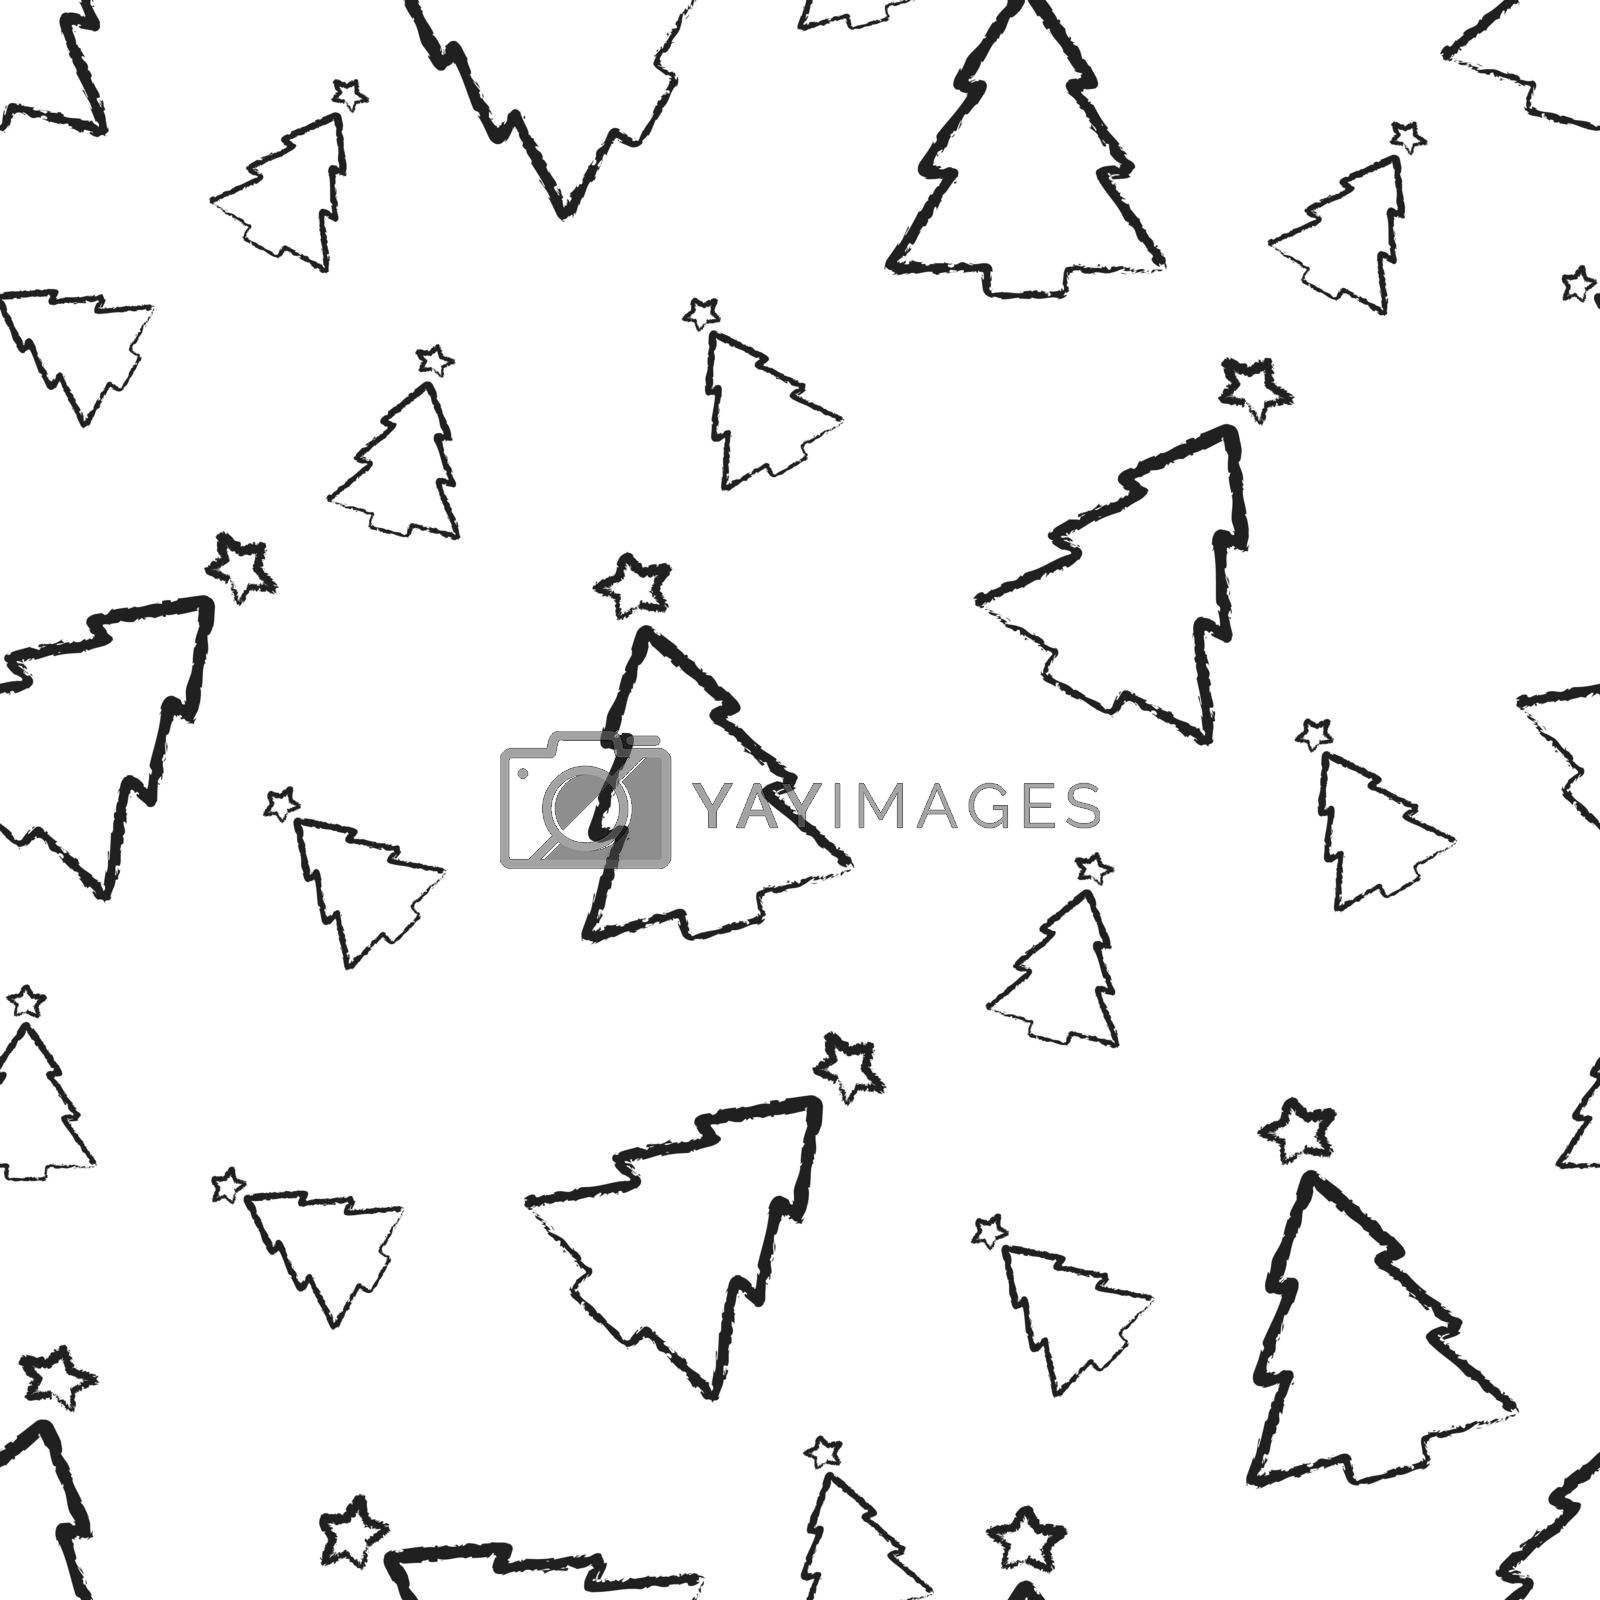 Christmas seamless pattern. hand-drawn charcoal black outline christmas trees isolated on white. stock vector illustration for wrapping, packaging, banner, card, textile. minimal scandinavian style